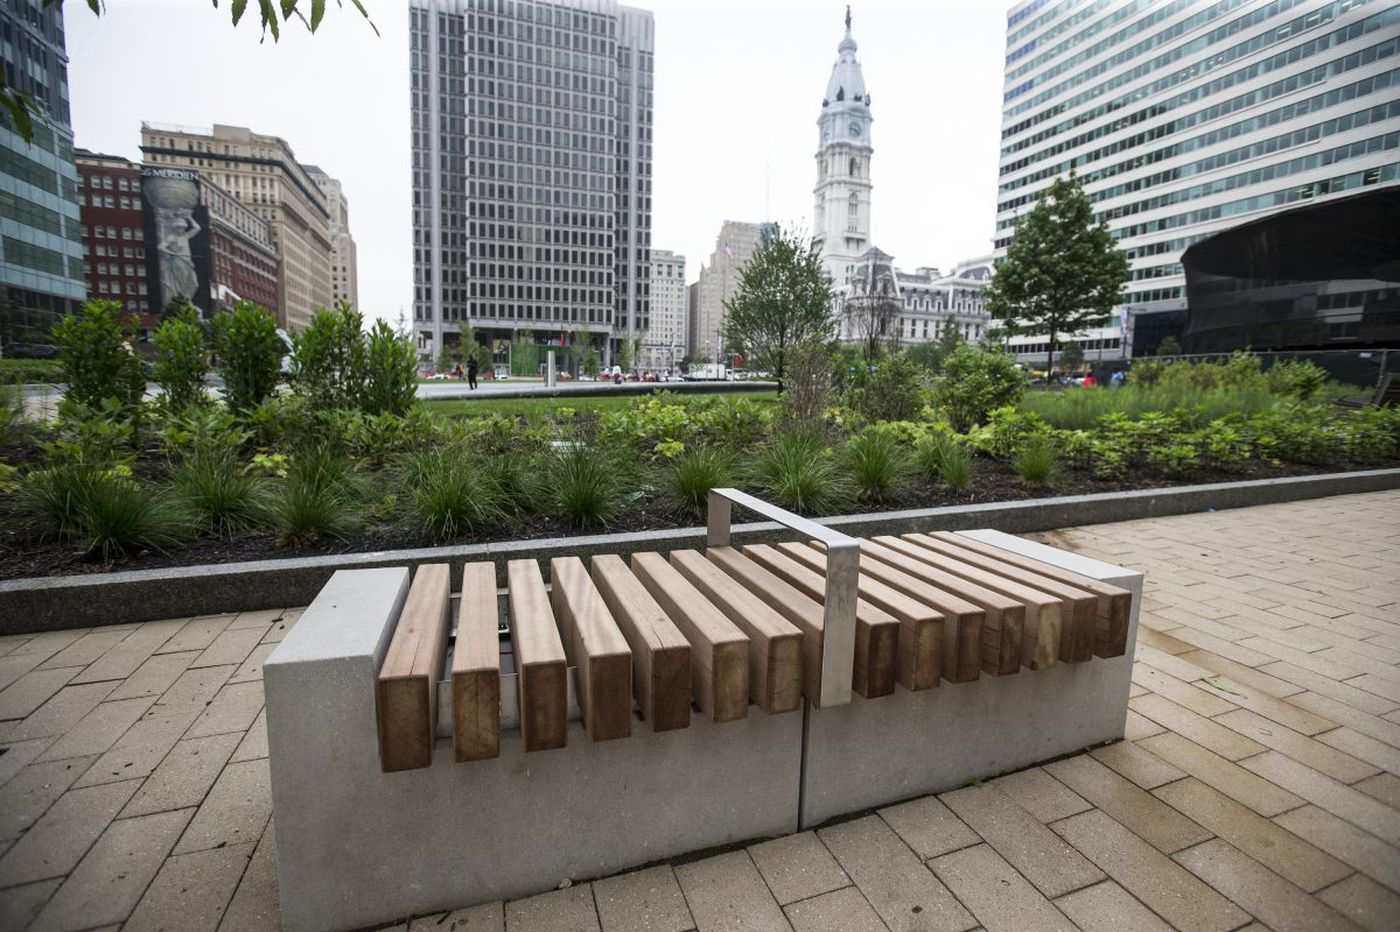 Is LOVE Park inclusive - or hostile? How the 'war on sitting' is changing public spaces